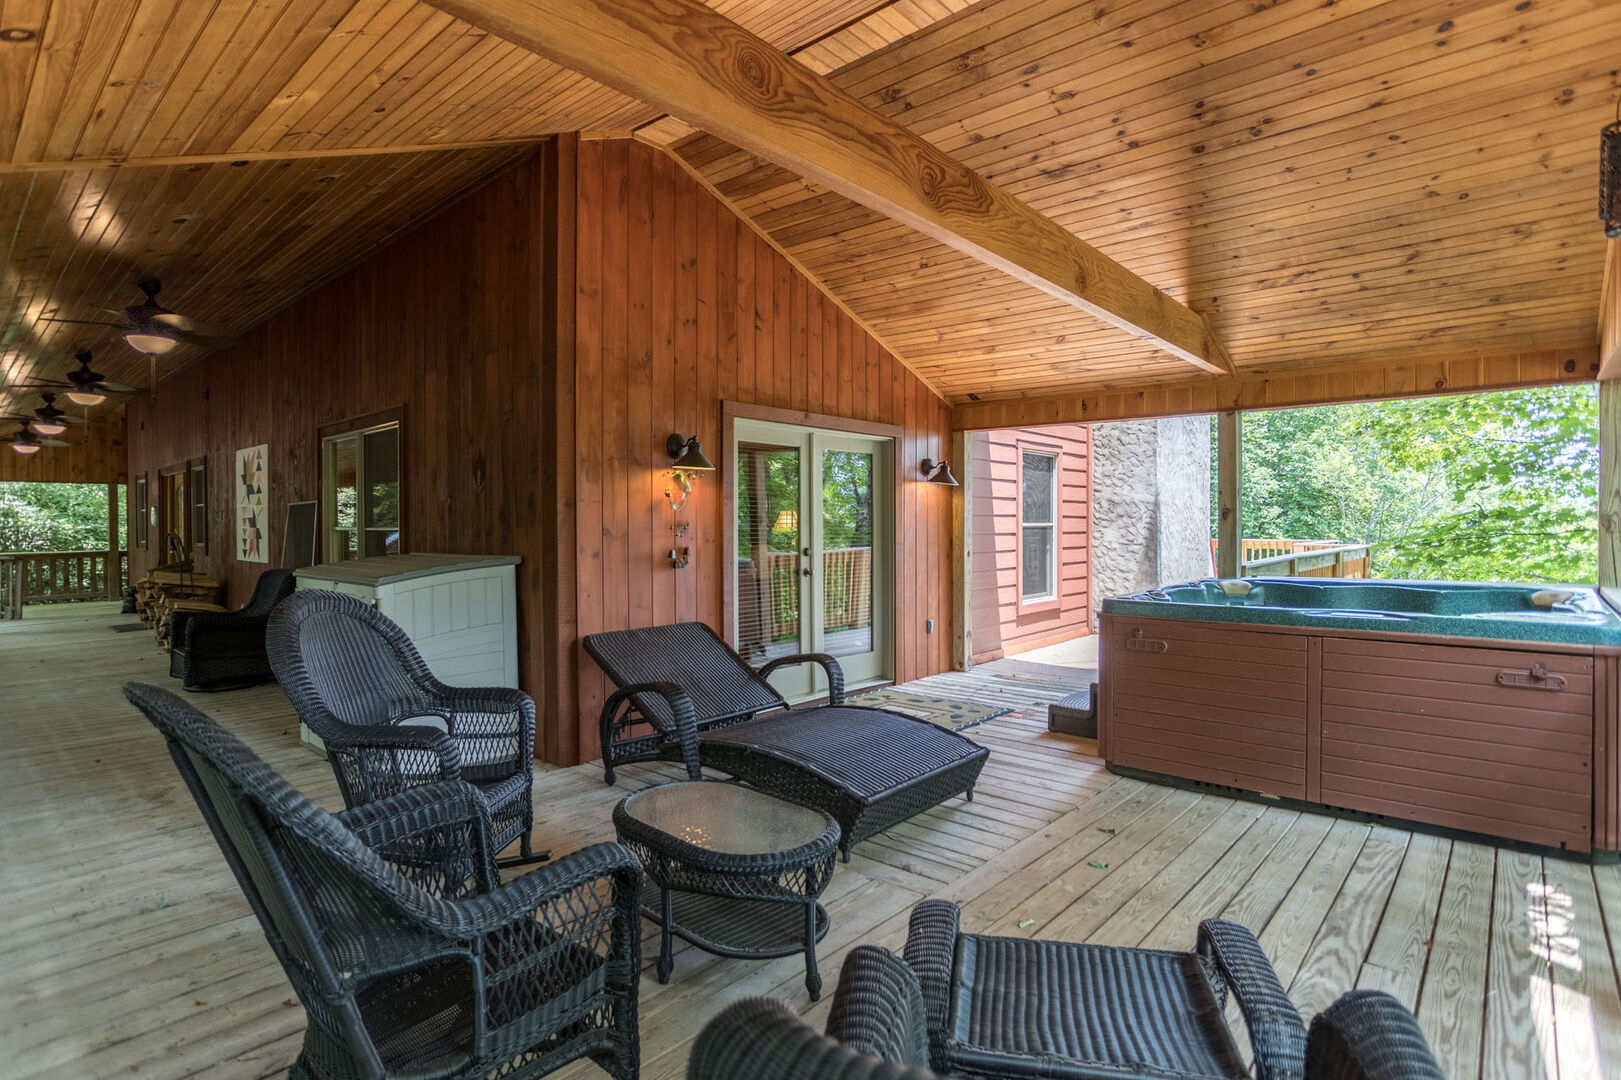 Plenty of seating on the deck outside to enjoy the cool mountain air